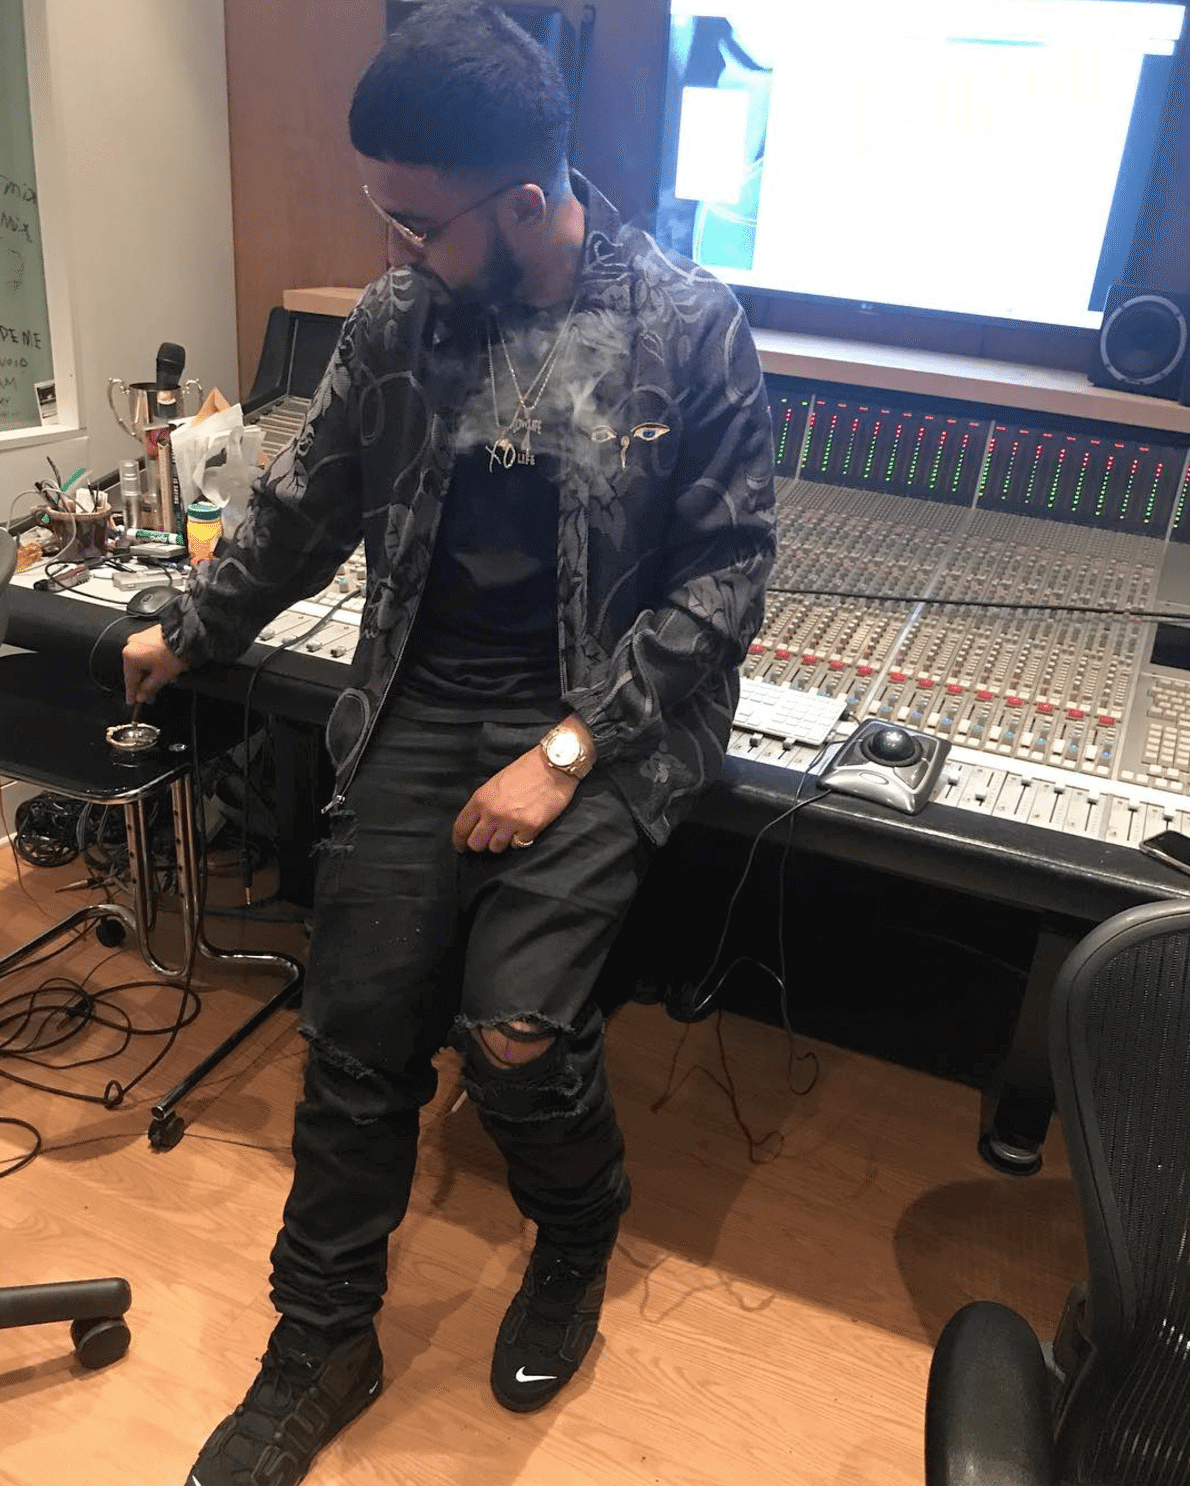 NAV in the Supreme x Nike Air More Uptempo